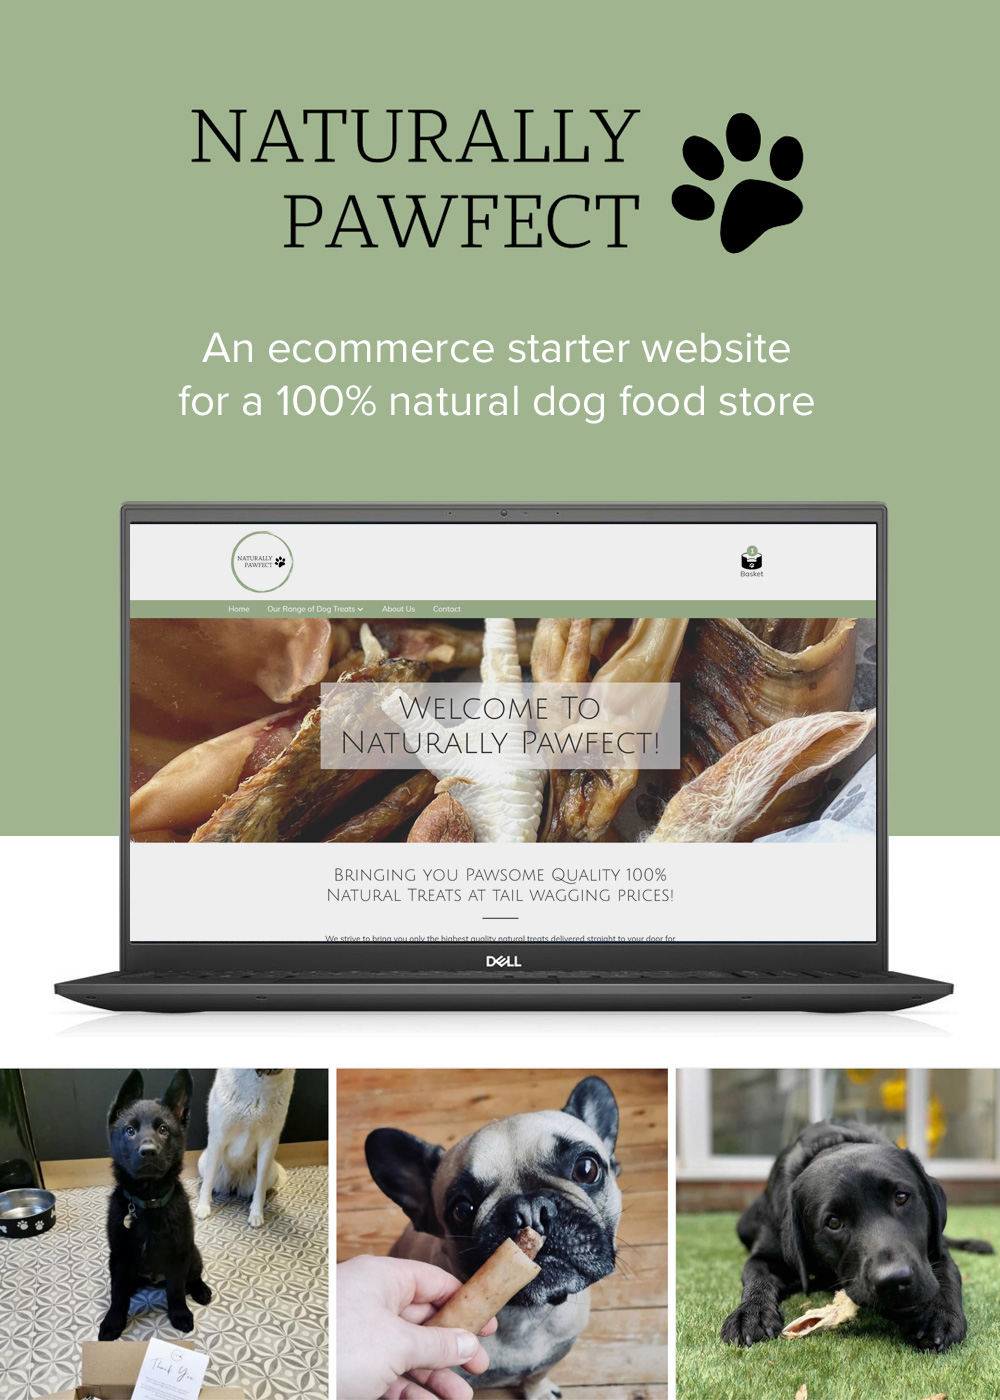 Website designed by Rugby Web Design Limited - Naturally Pawfect